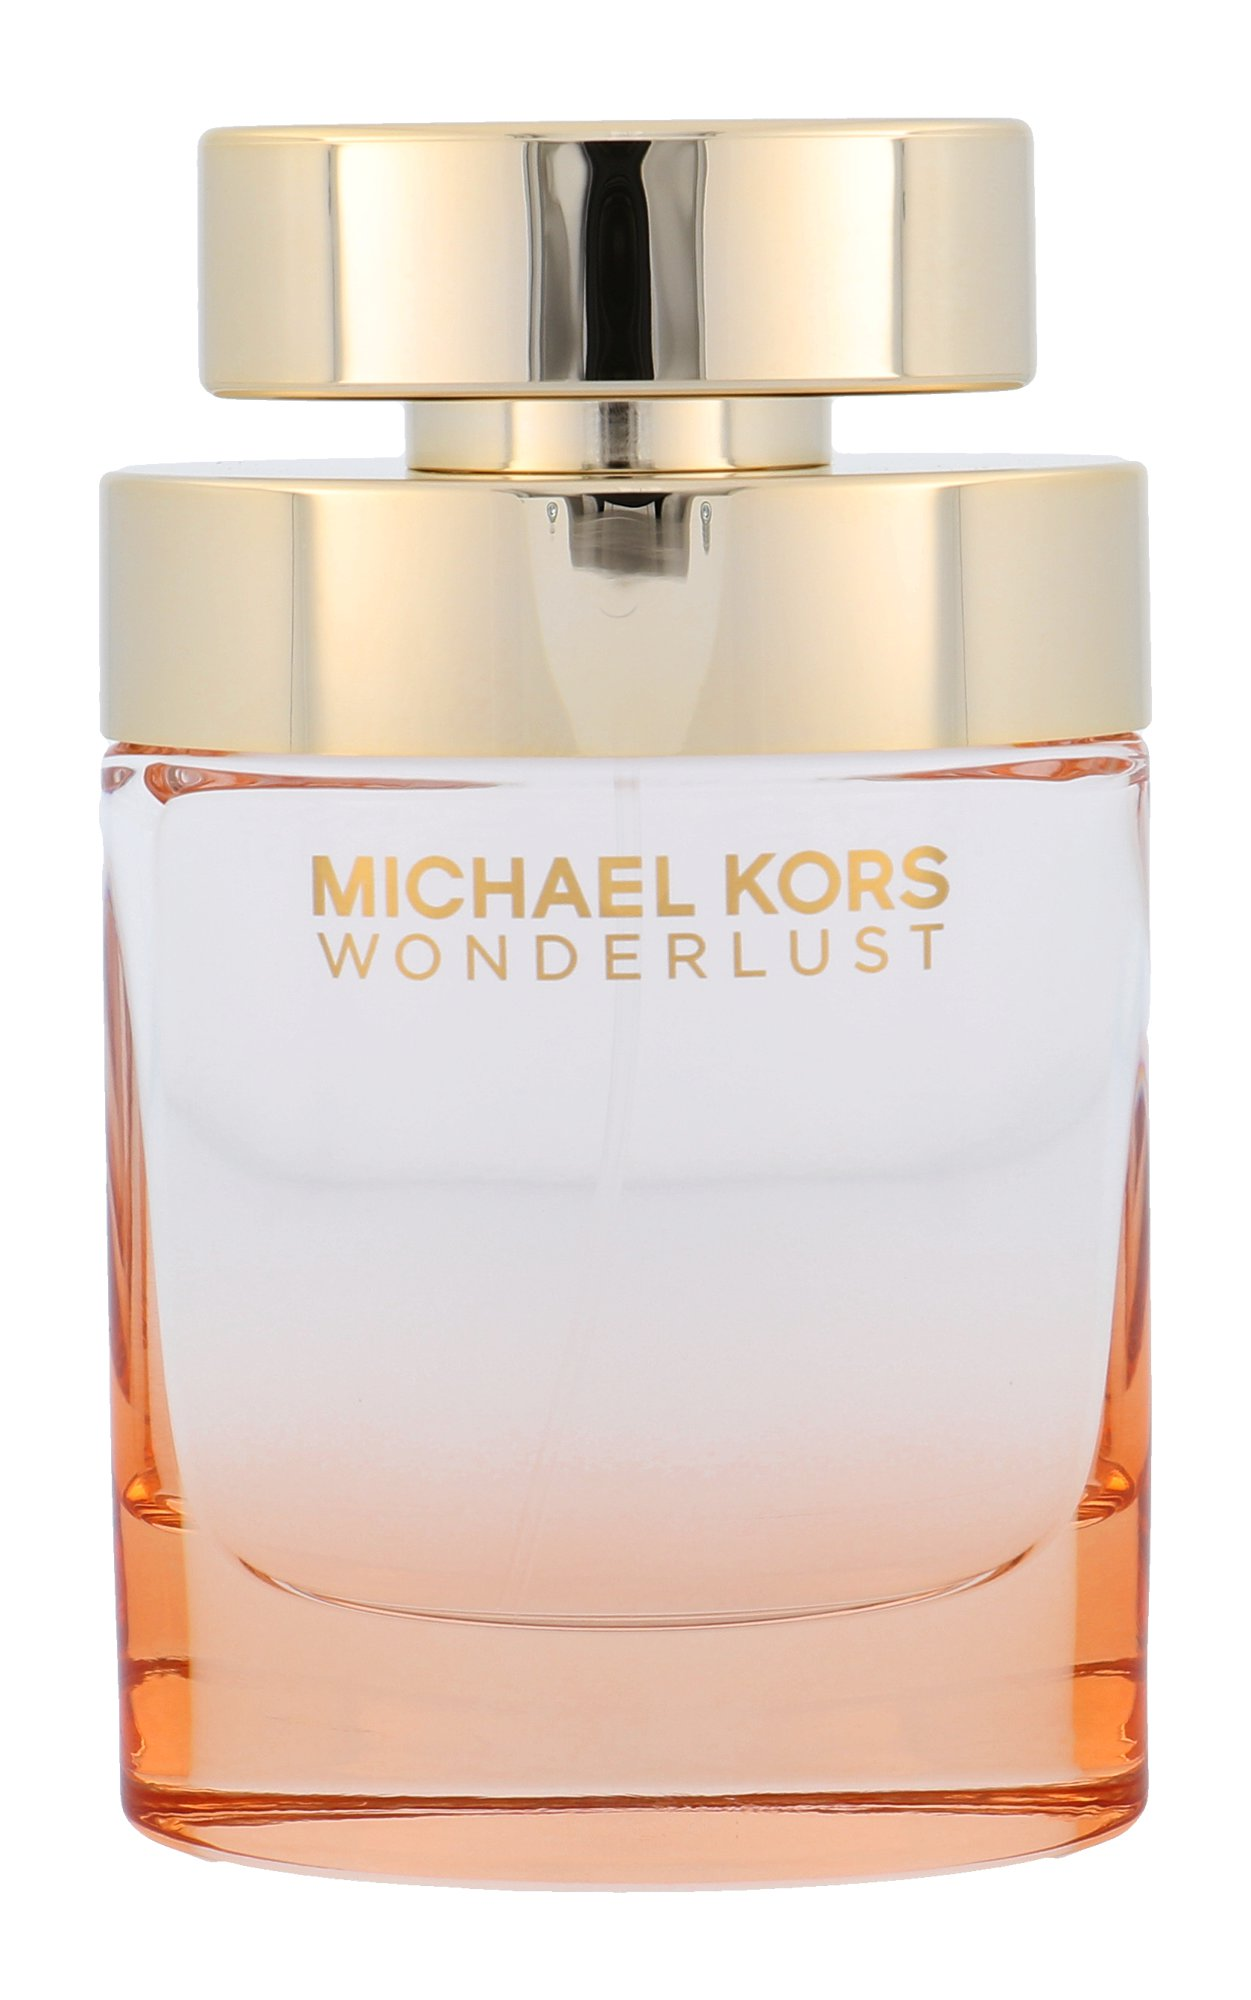 Michael Kors Wonderlust, Parfumovaná voda 100ml